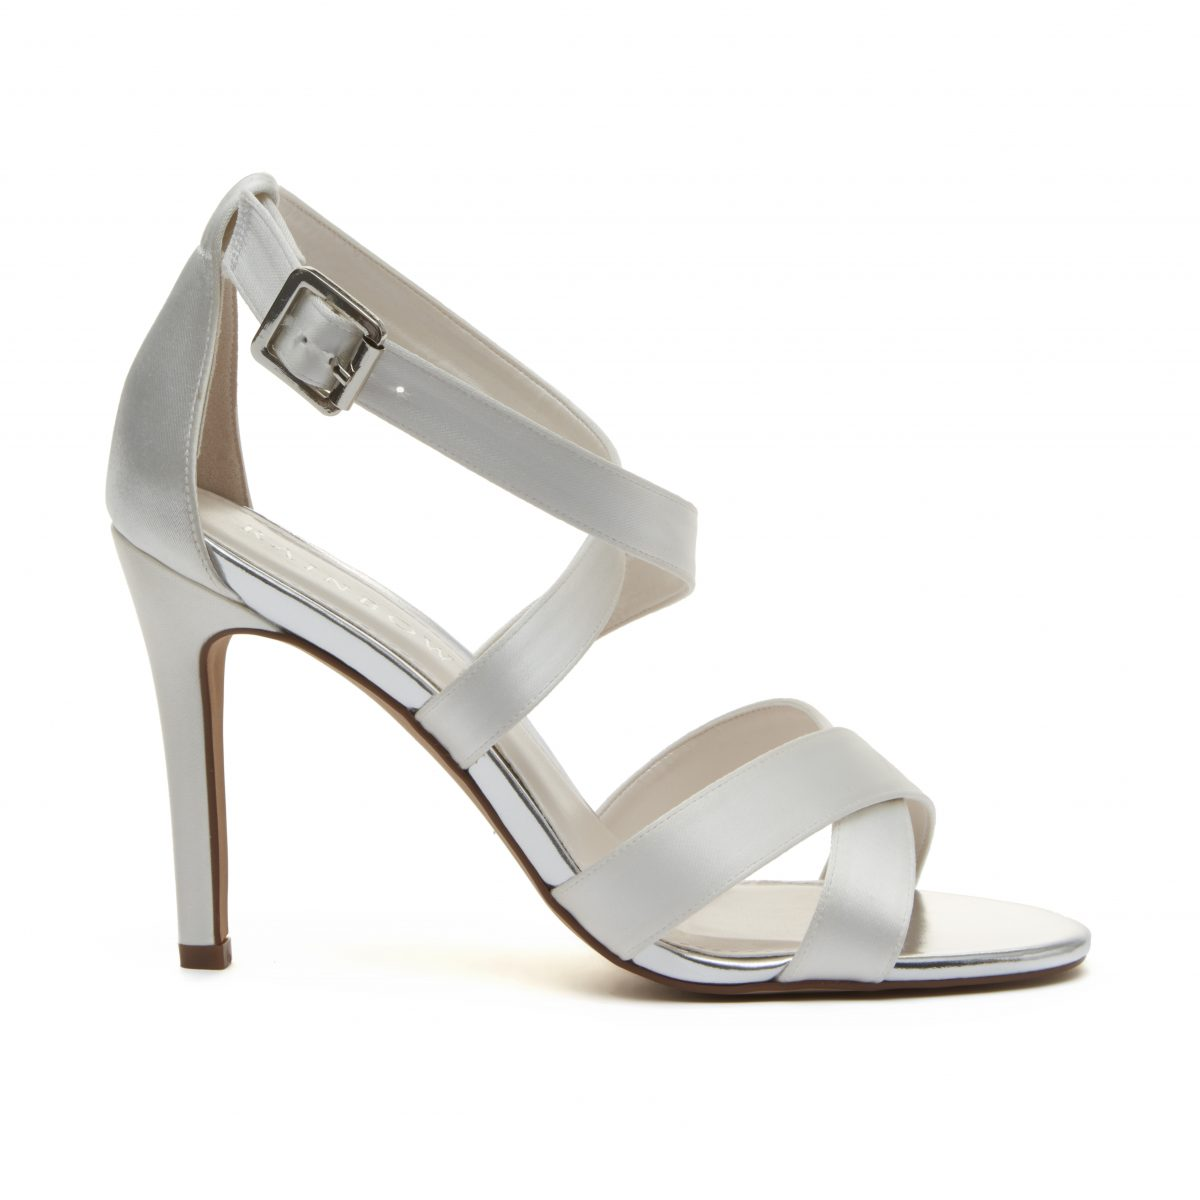 Rainbow Club Reese - Strappy Sandal 2